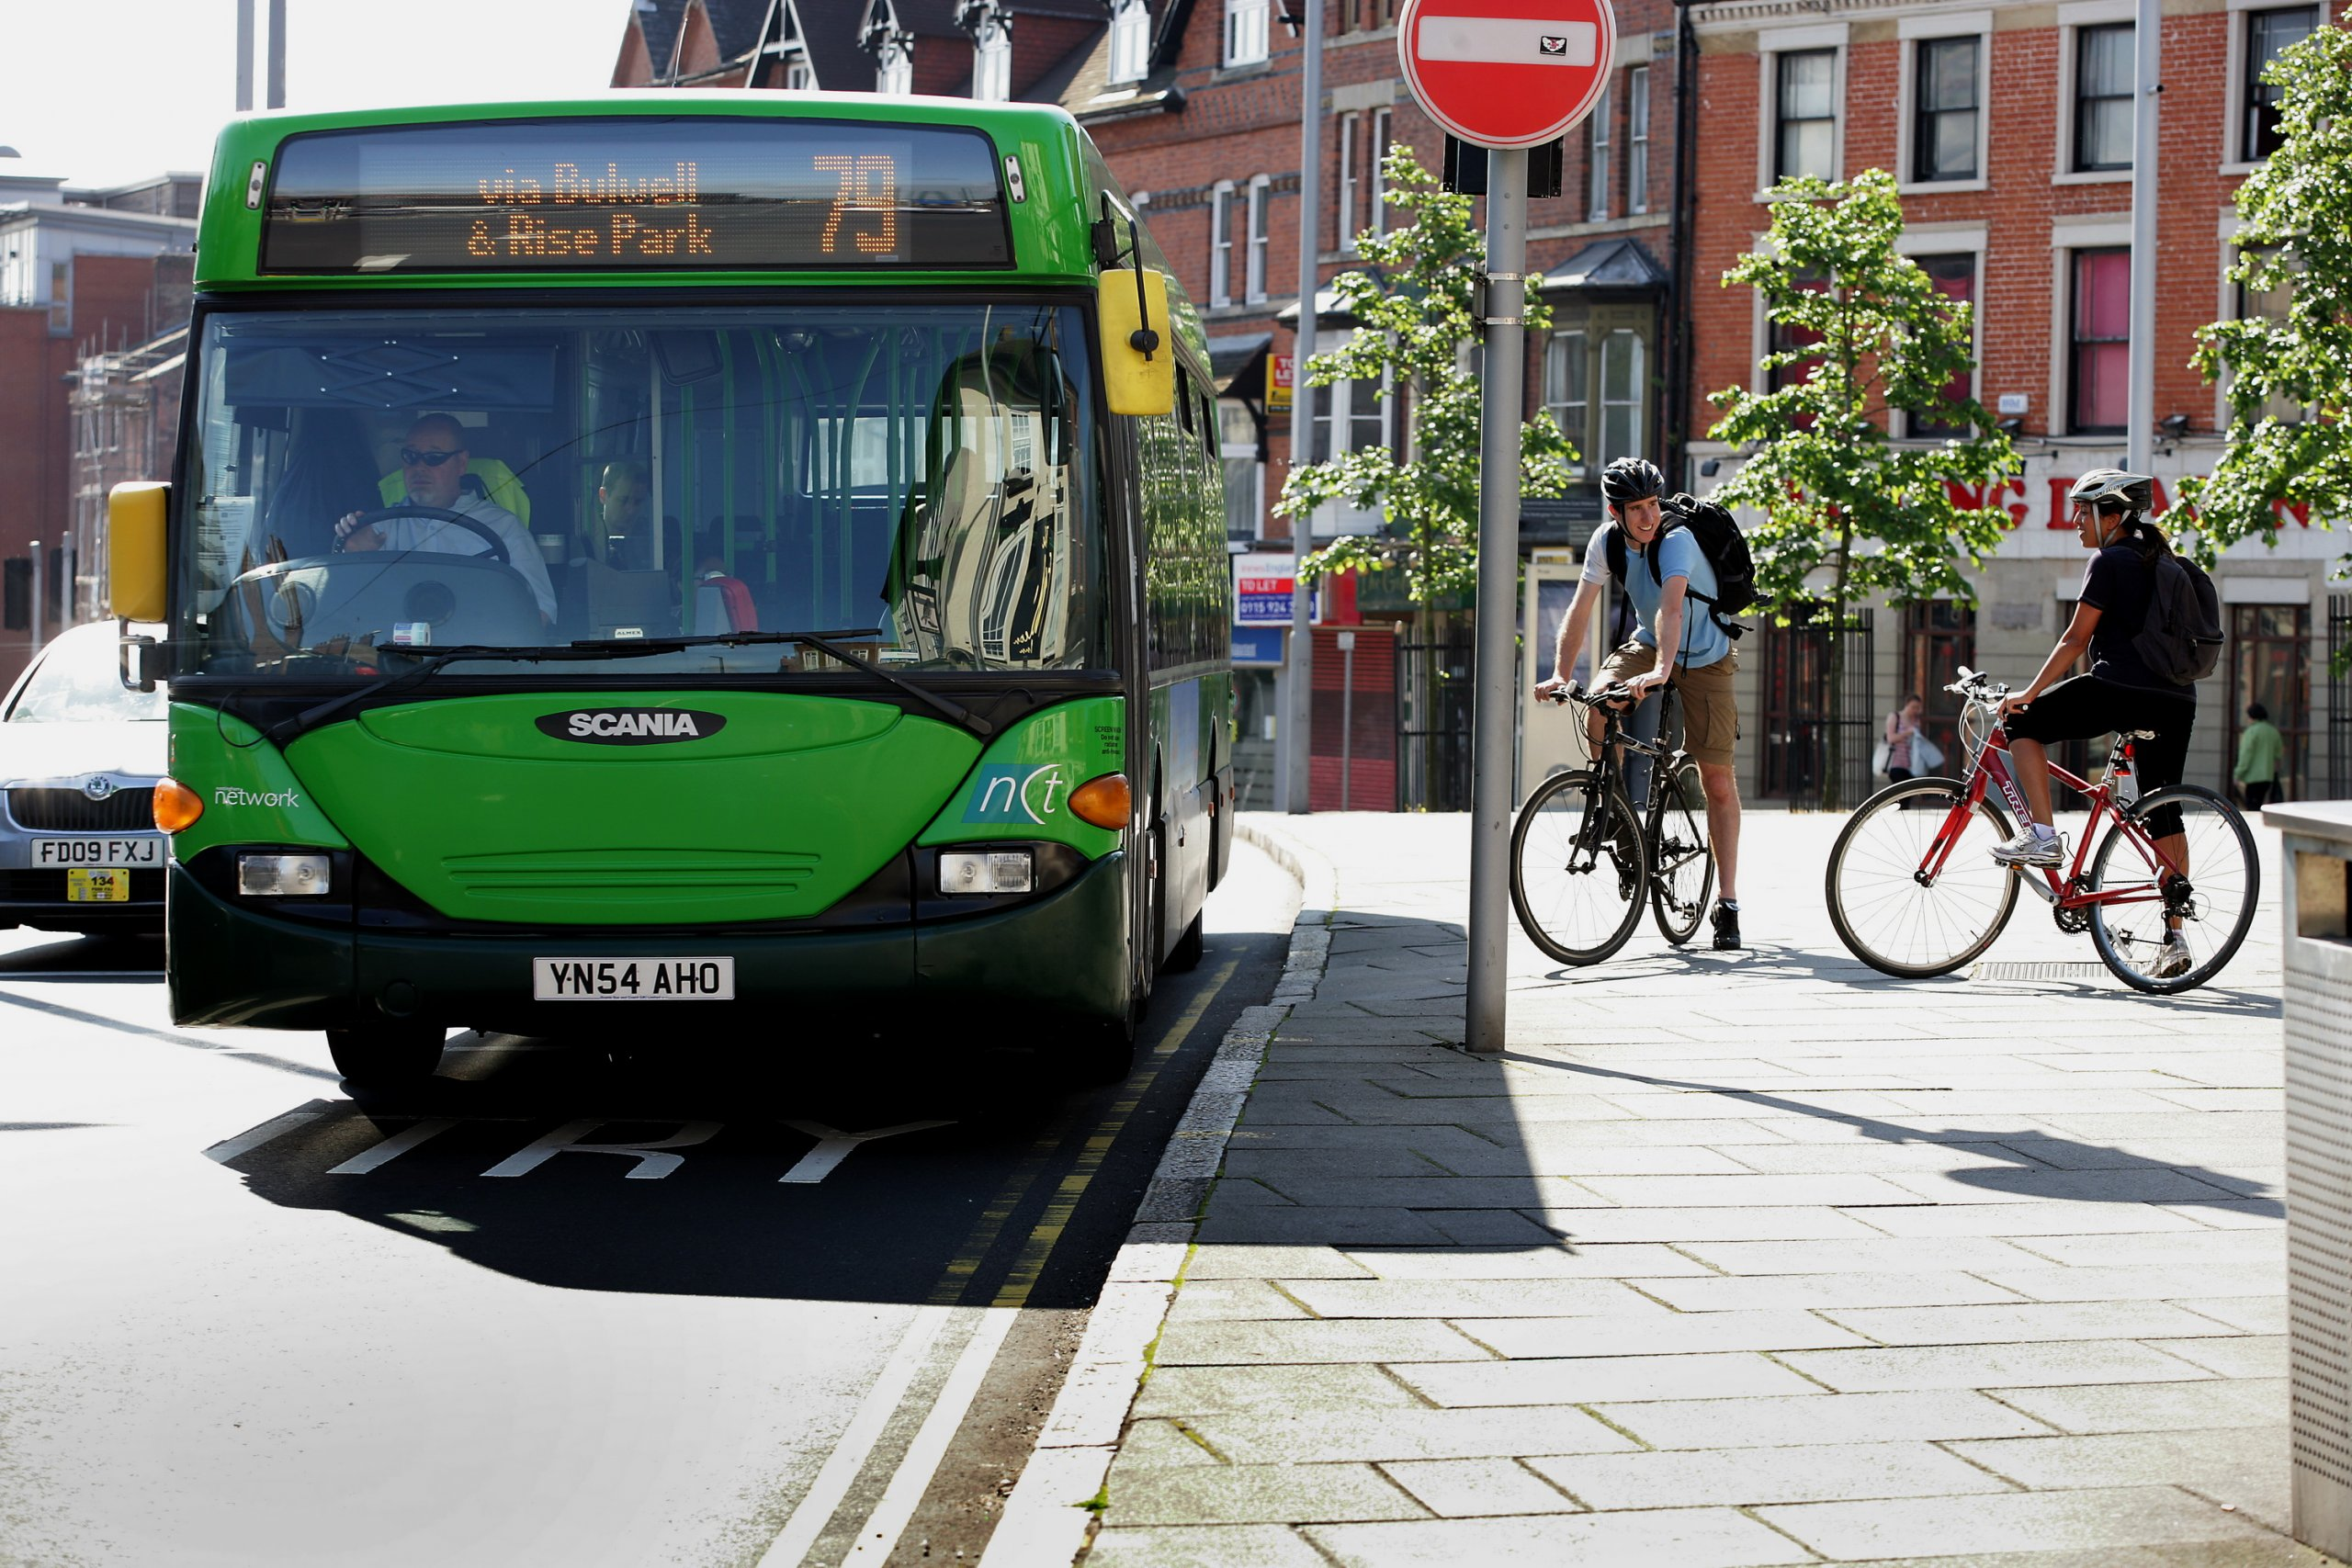 Cyclists standing next to a bus